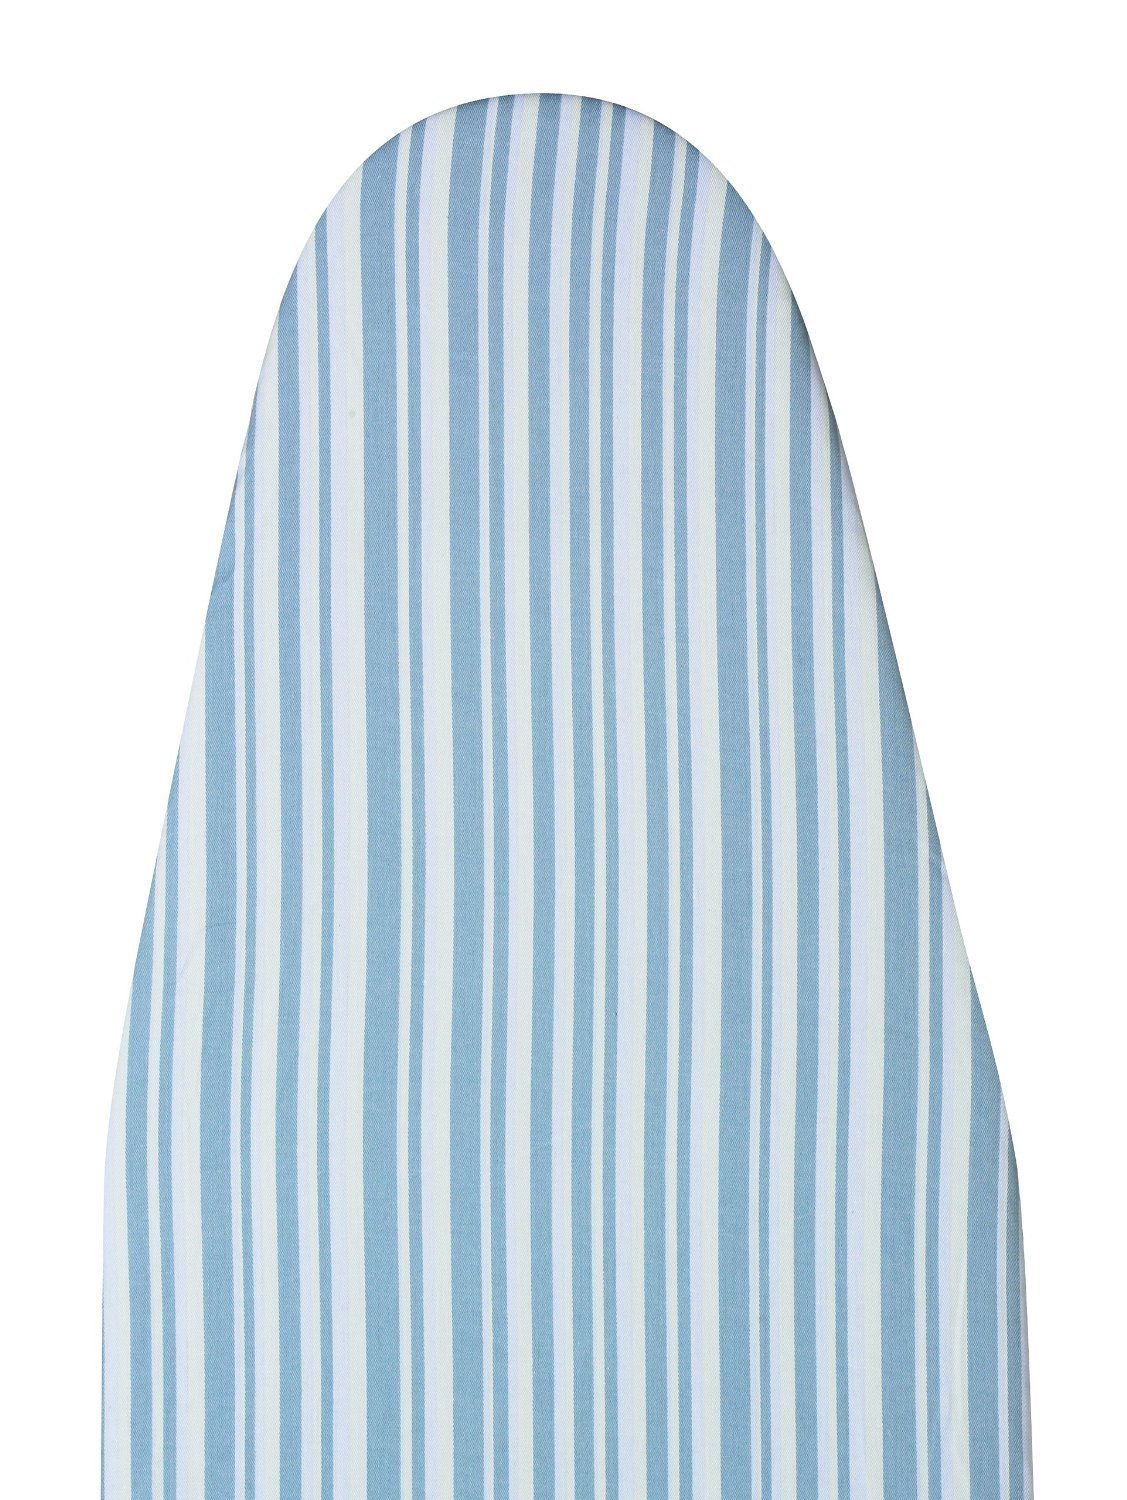 Polder IBC-9554-623 Replacement Ironing Board Pad and Cover for Standard 54'' x 15-17'' Boards, Heavy Use, Beach Stripe